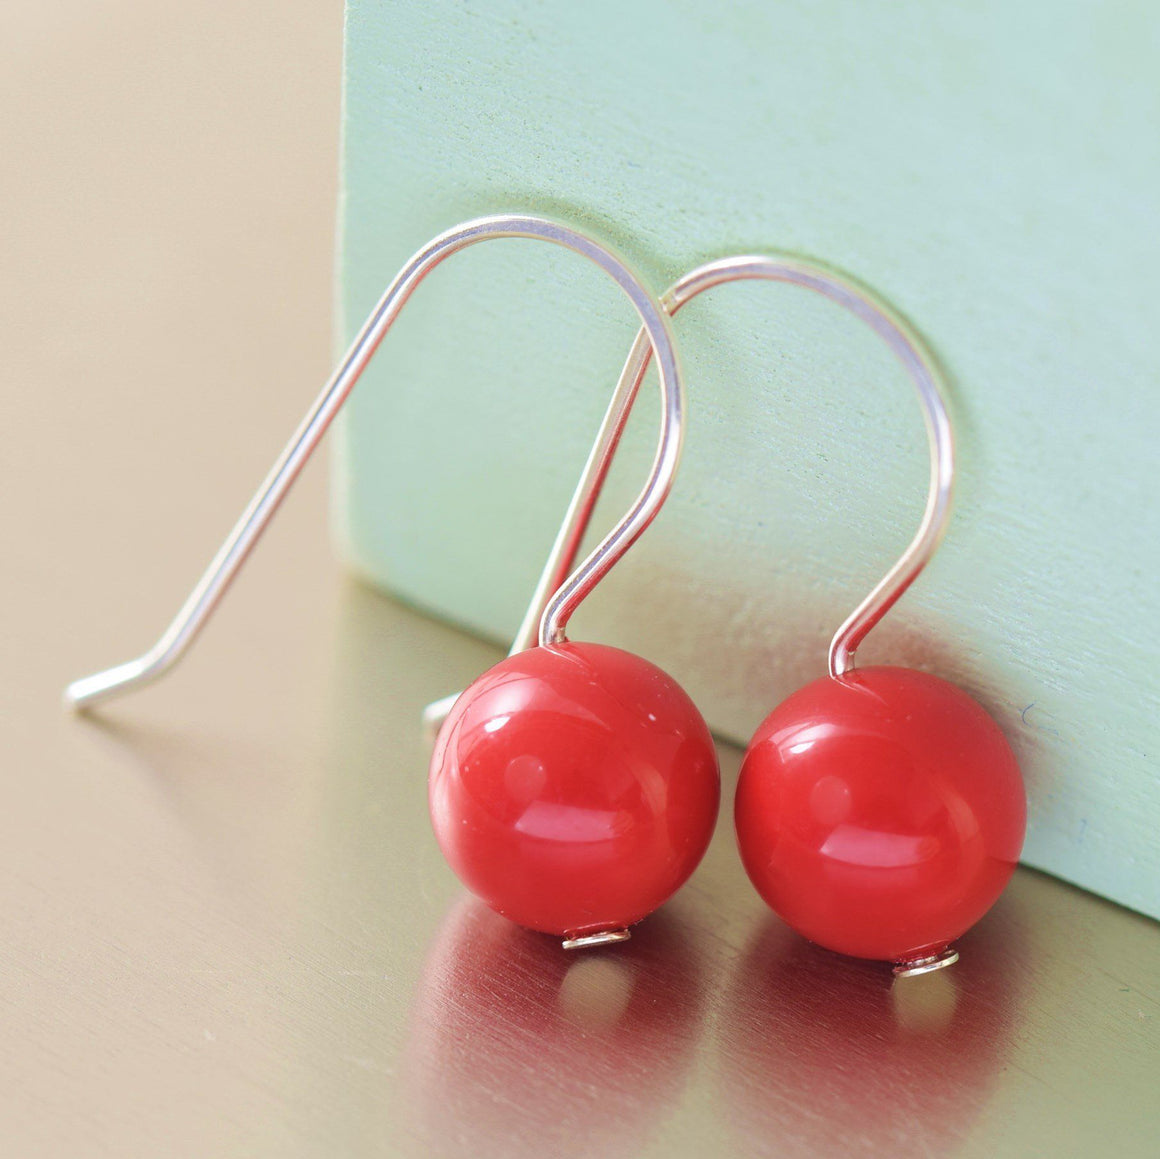 Red Swarovski pearl earrings in honor of American Heart Association